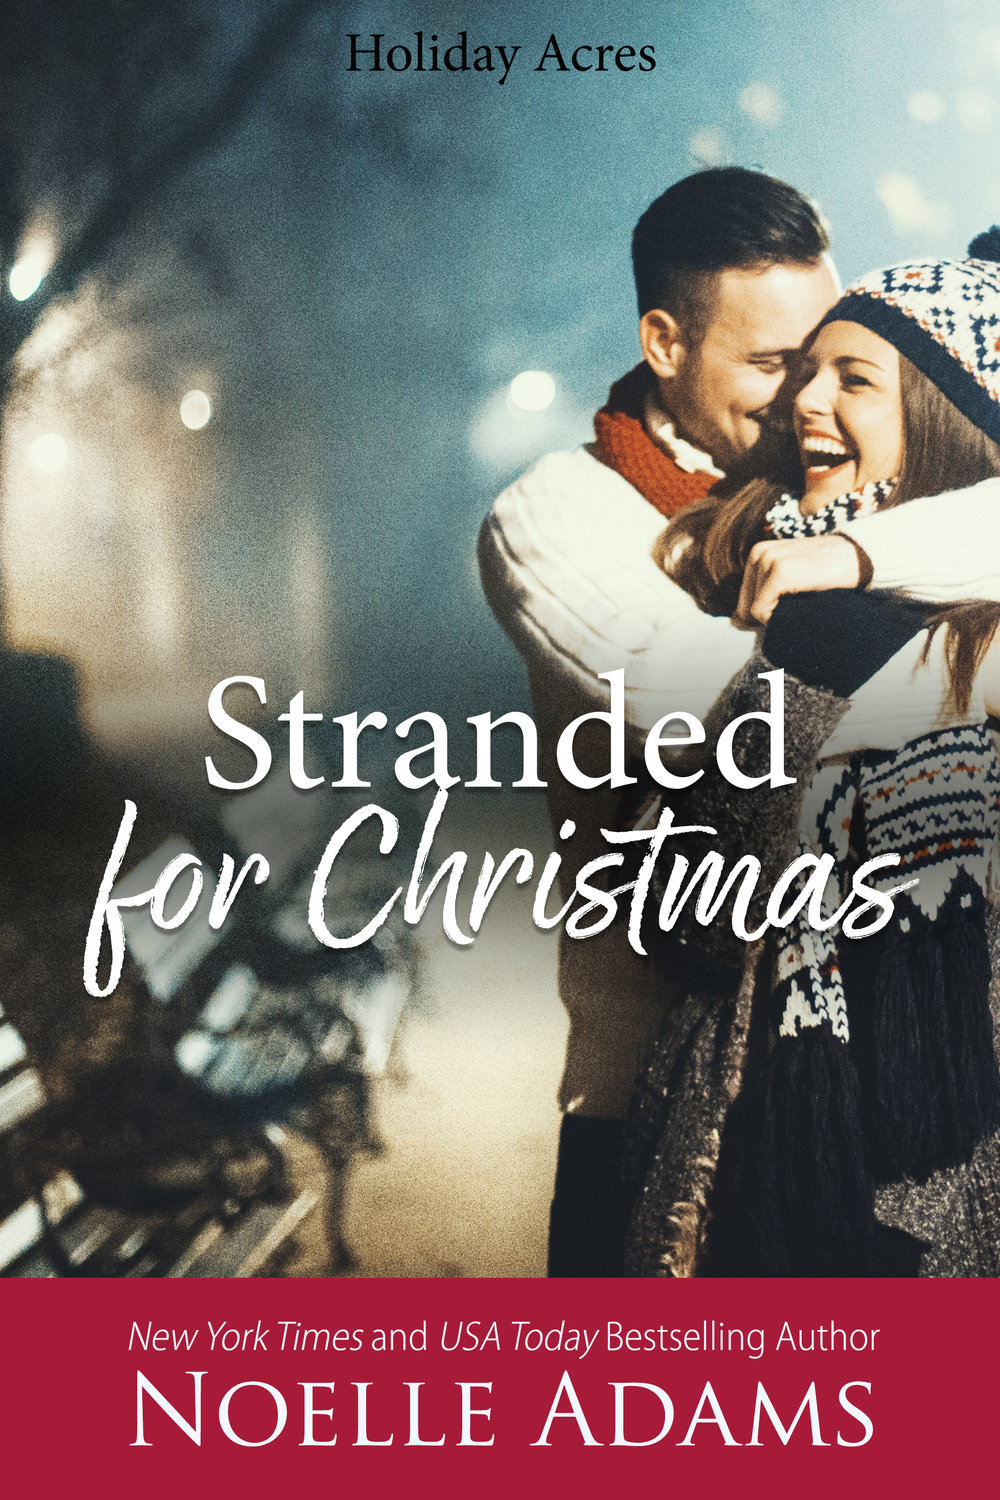 Stranded for Christmas2.jpg